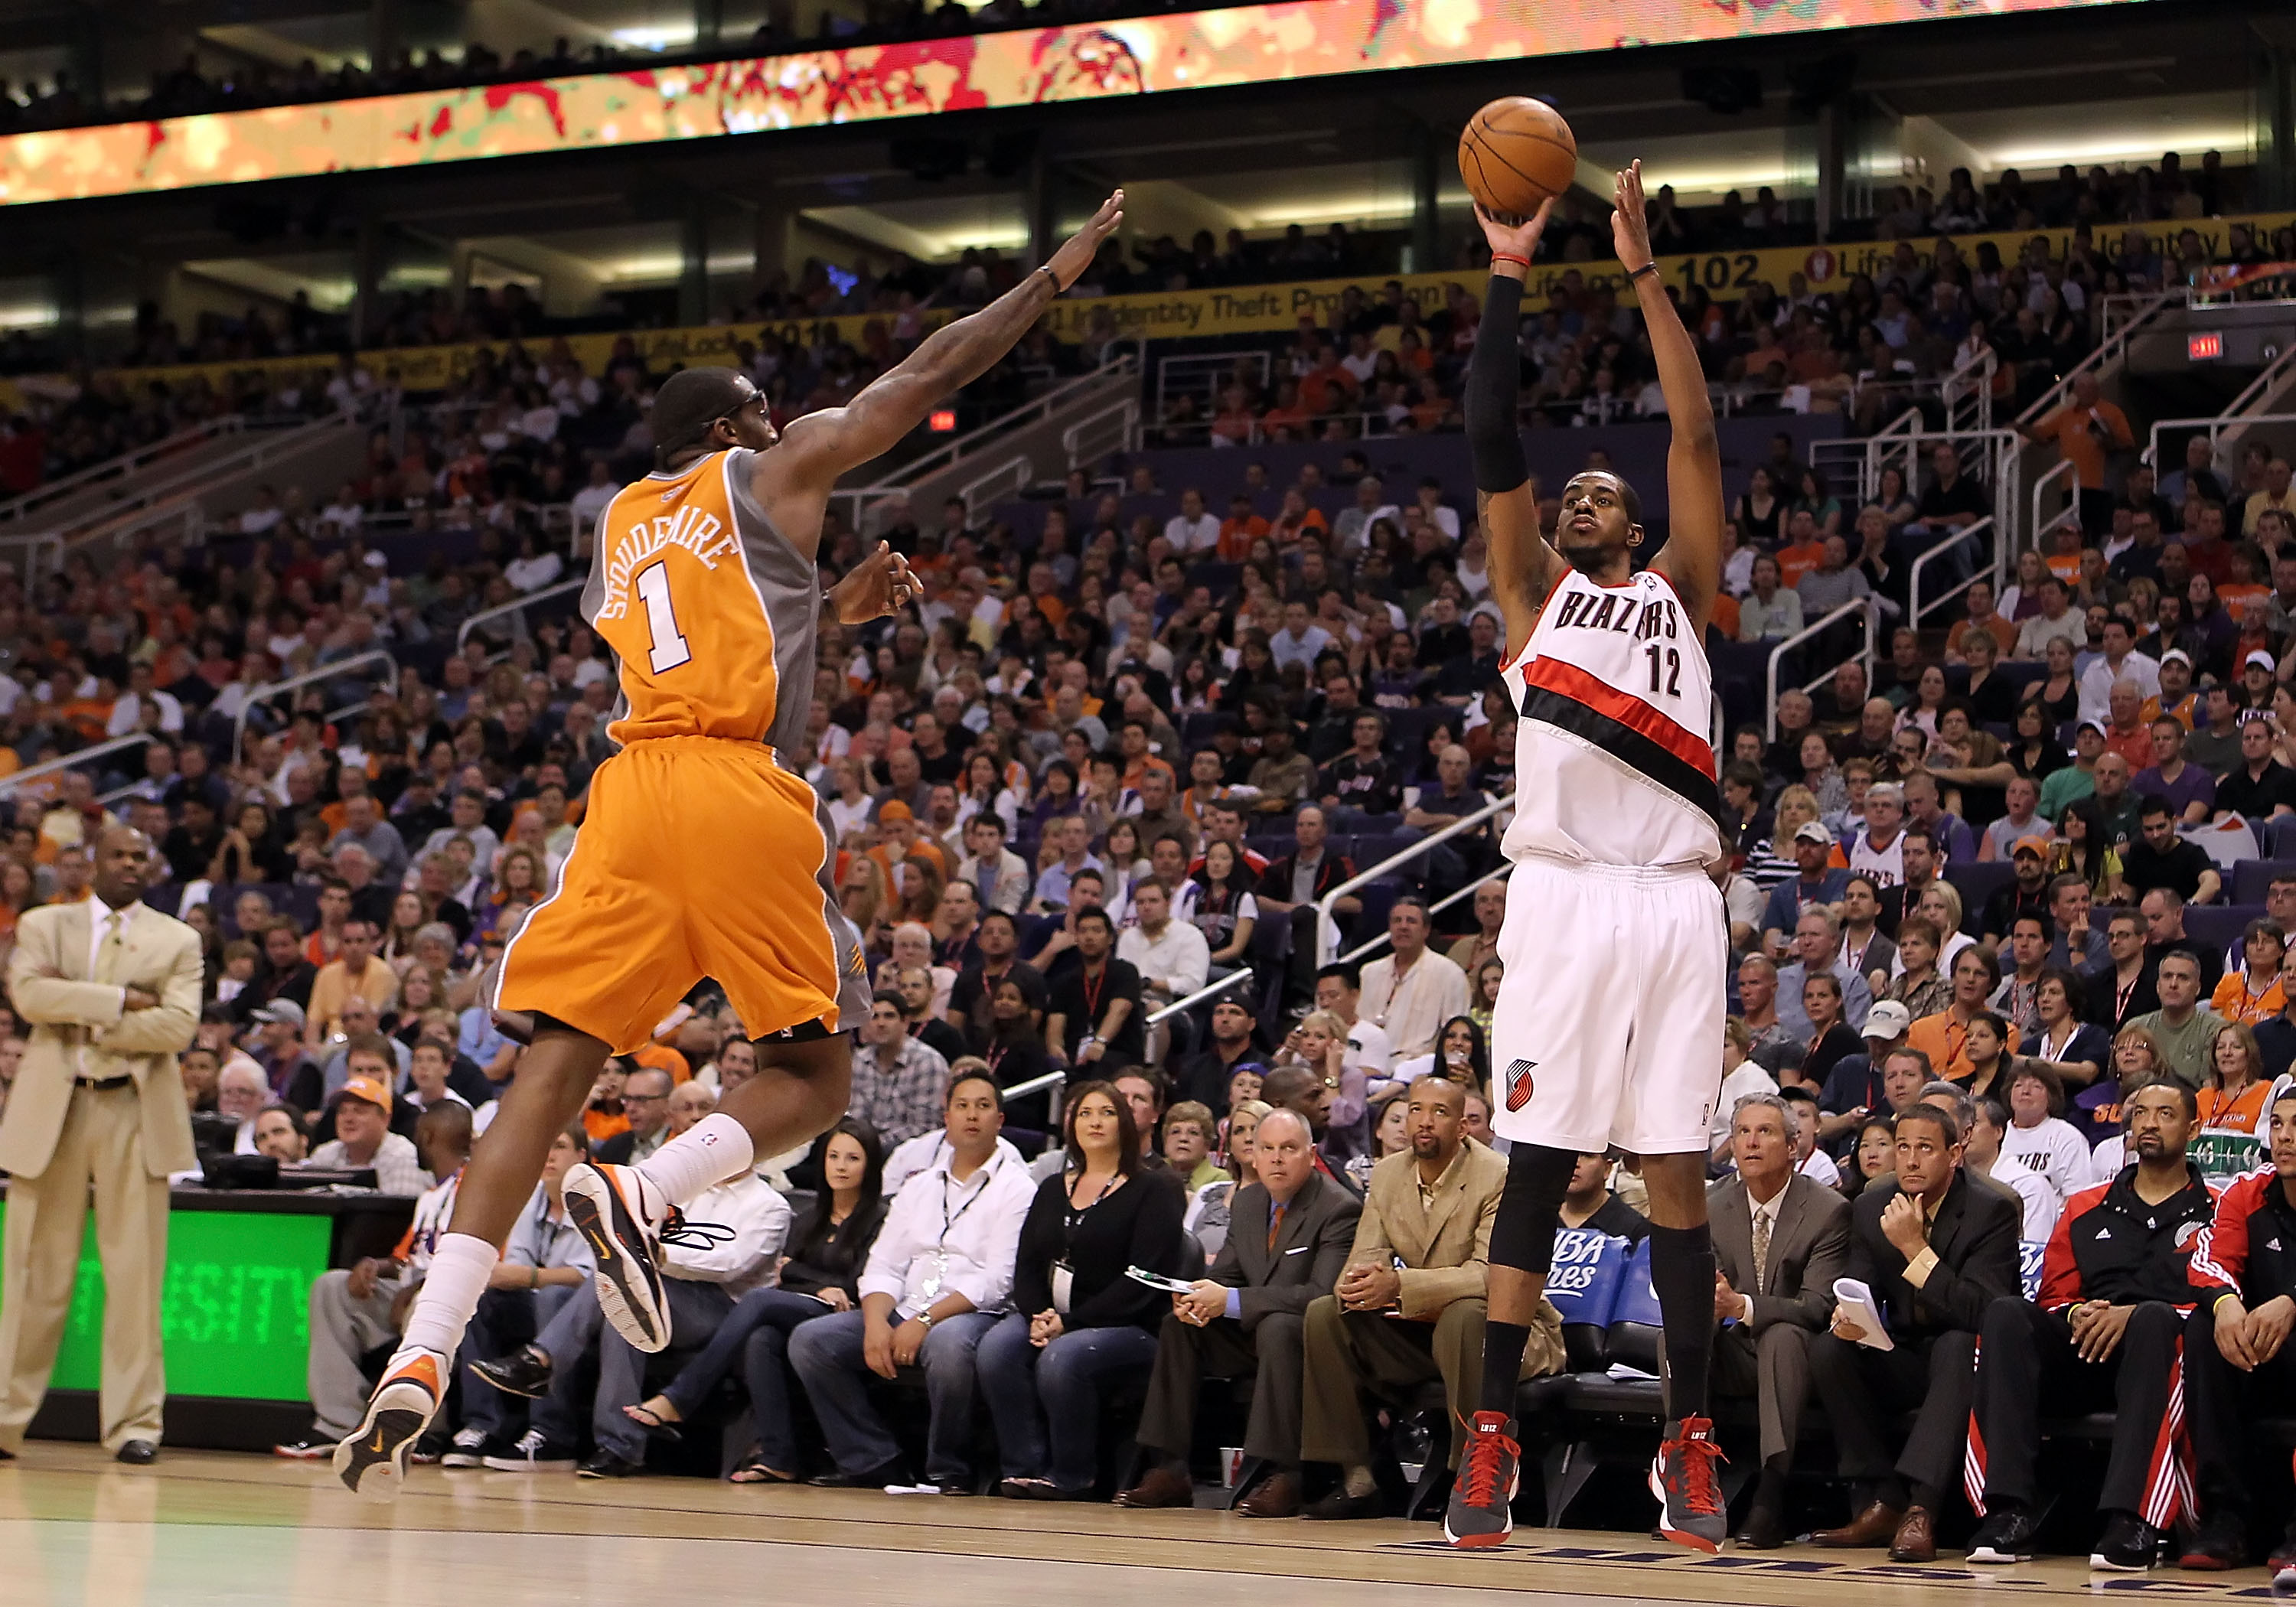 PHOENIX - MARCH 21:  LaMarcus Aldridge #12 of the Portland Trail Blazers puts up a three point shot over Amar'e Stoudemire #1 of the Phoenix Suns during the NBA game at US Airways Center on March 21, 2010 in Phoenix, Arizona. NOTE TO USER: User expressly